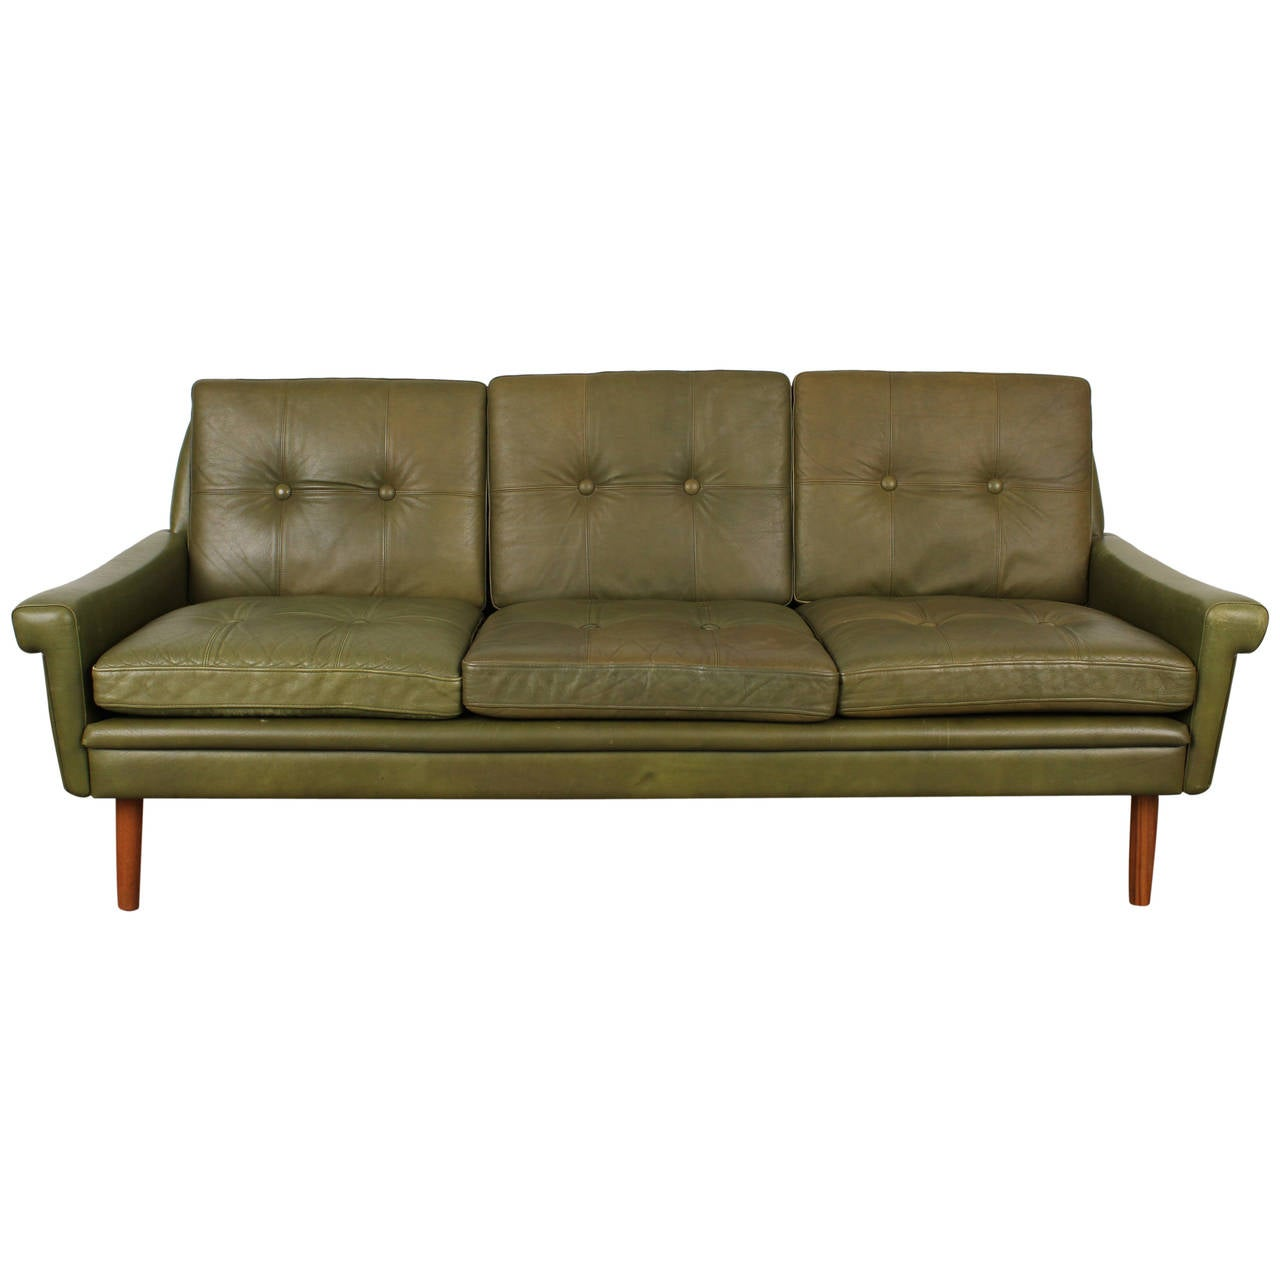 hollywood regency curved sofa battersea park road tufted mid century leather by skipper mobler at 1stdibs